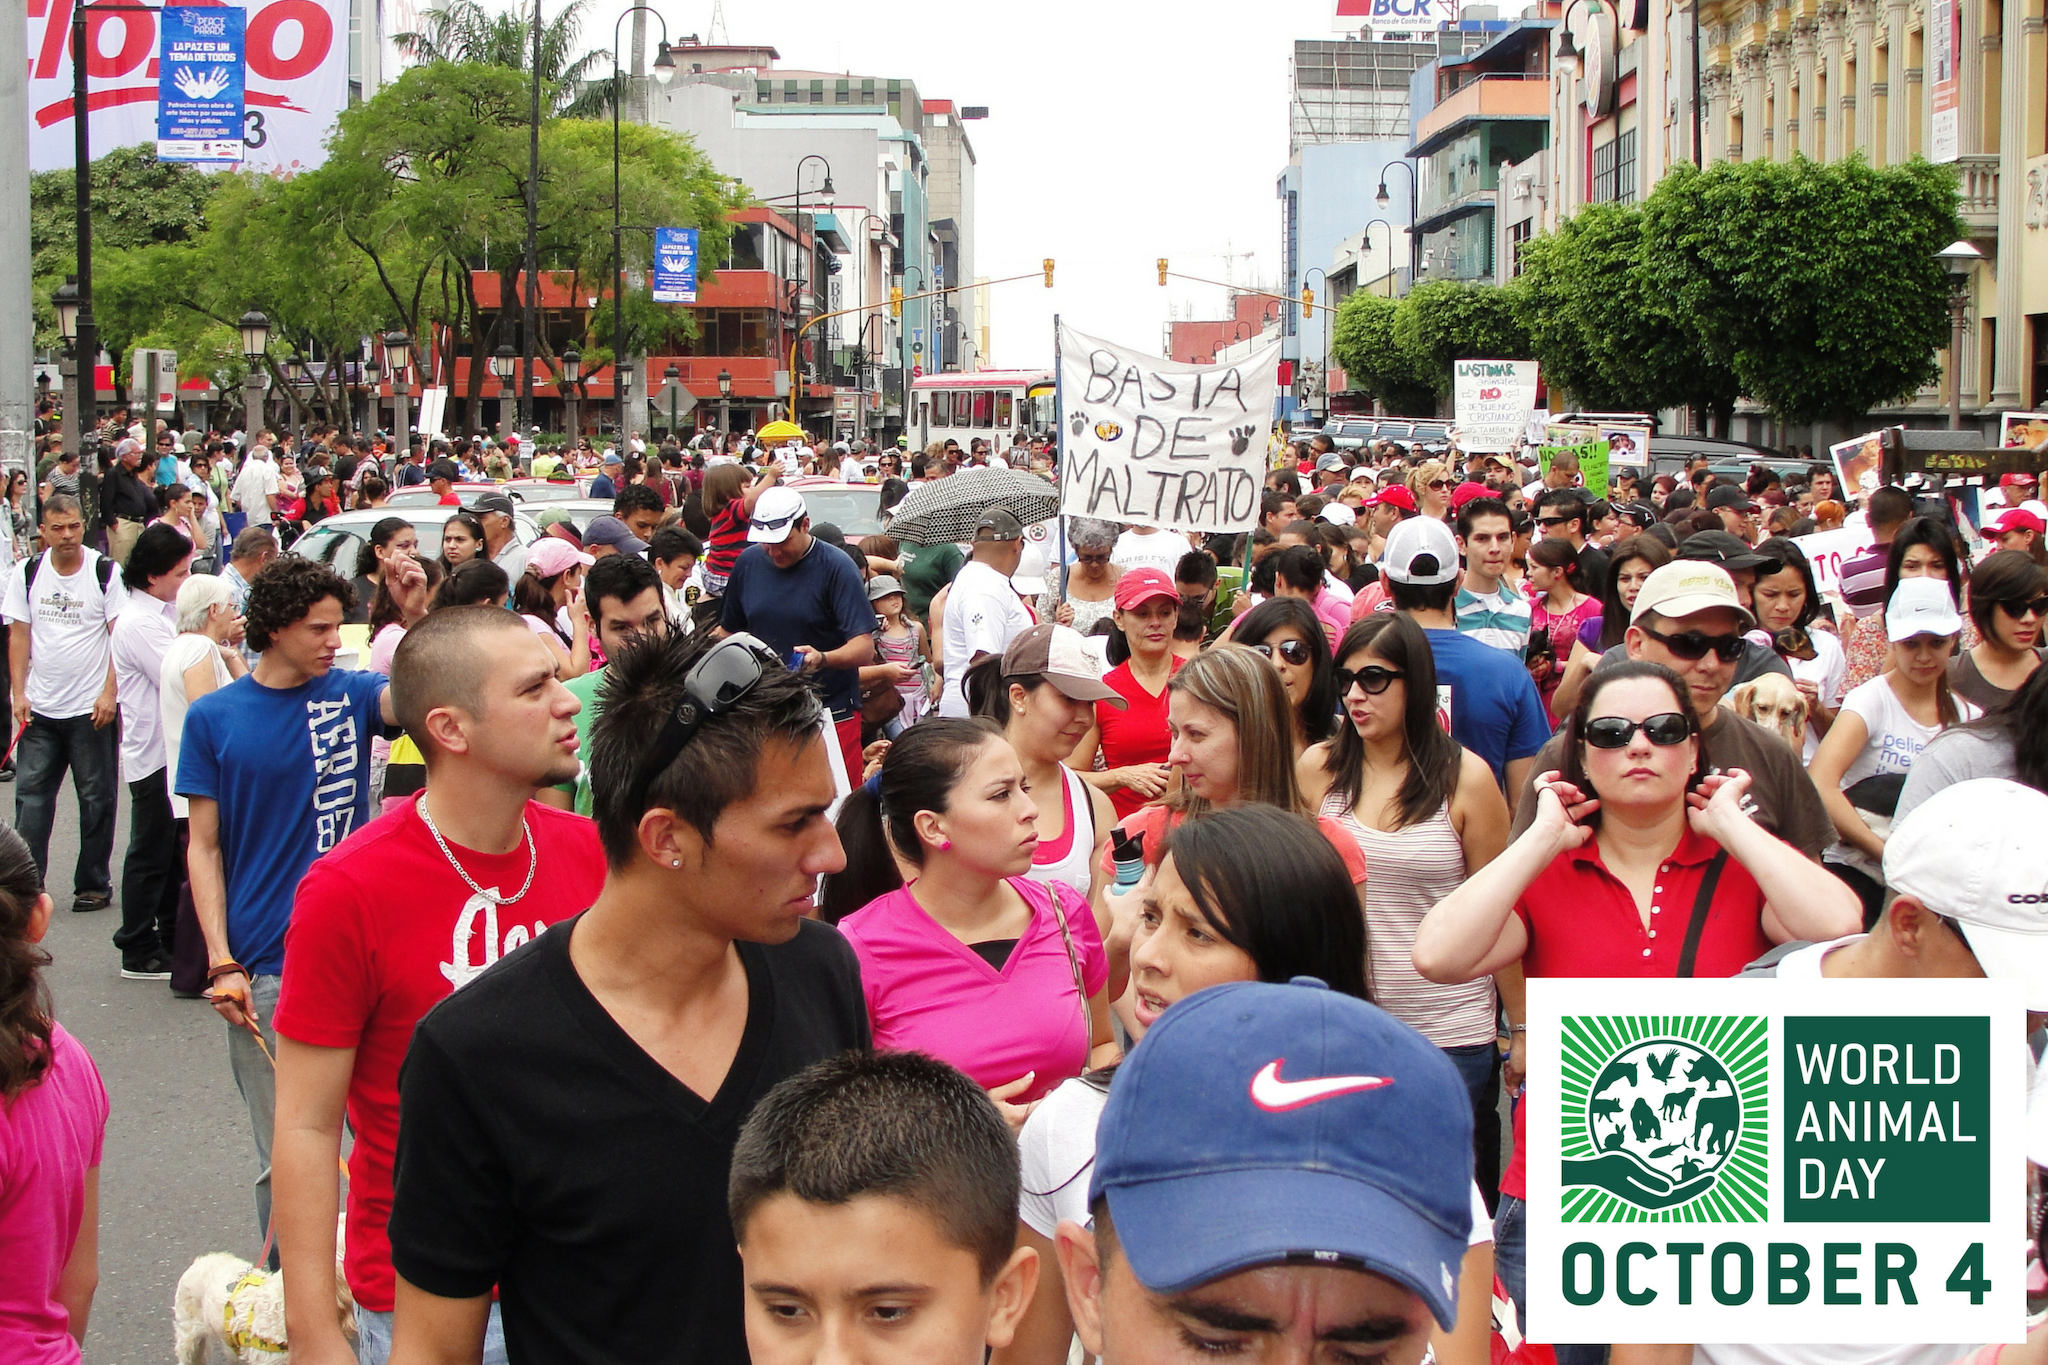 Costa Rica - 9000 March Against Animal Abuse